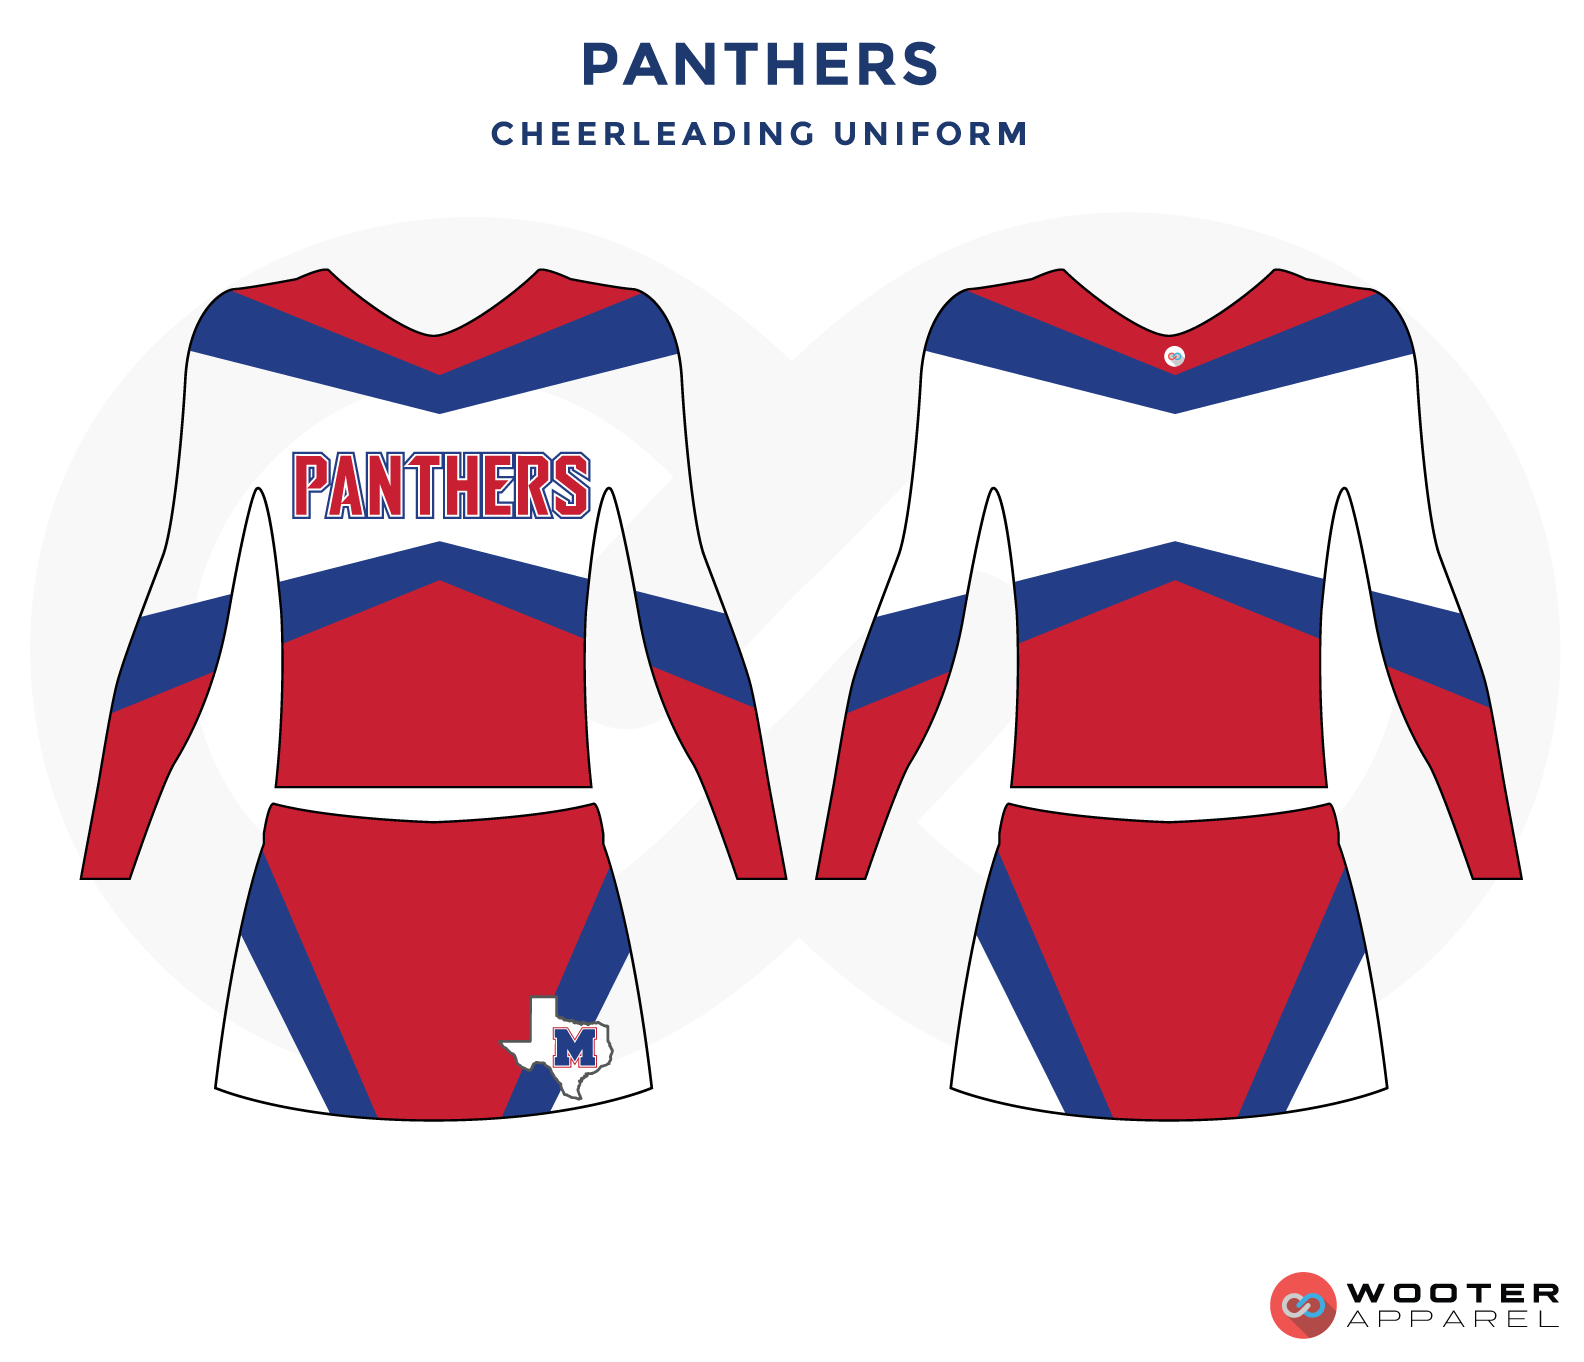 PANTHERS red white blue cheerleading uniforms, top, and skirt